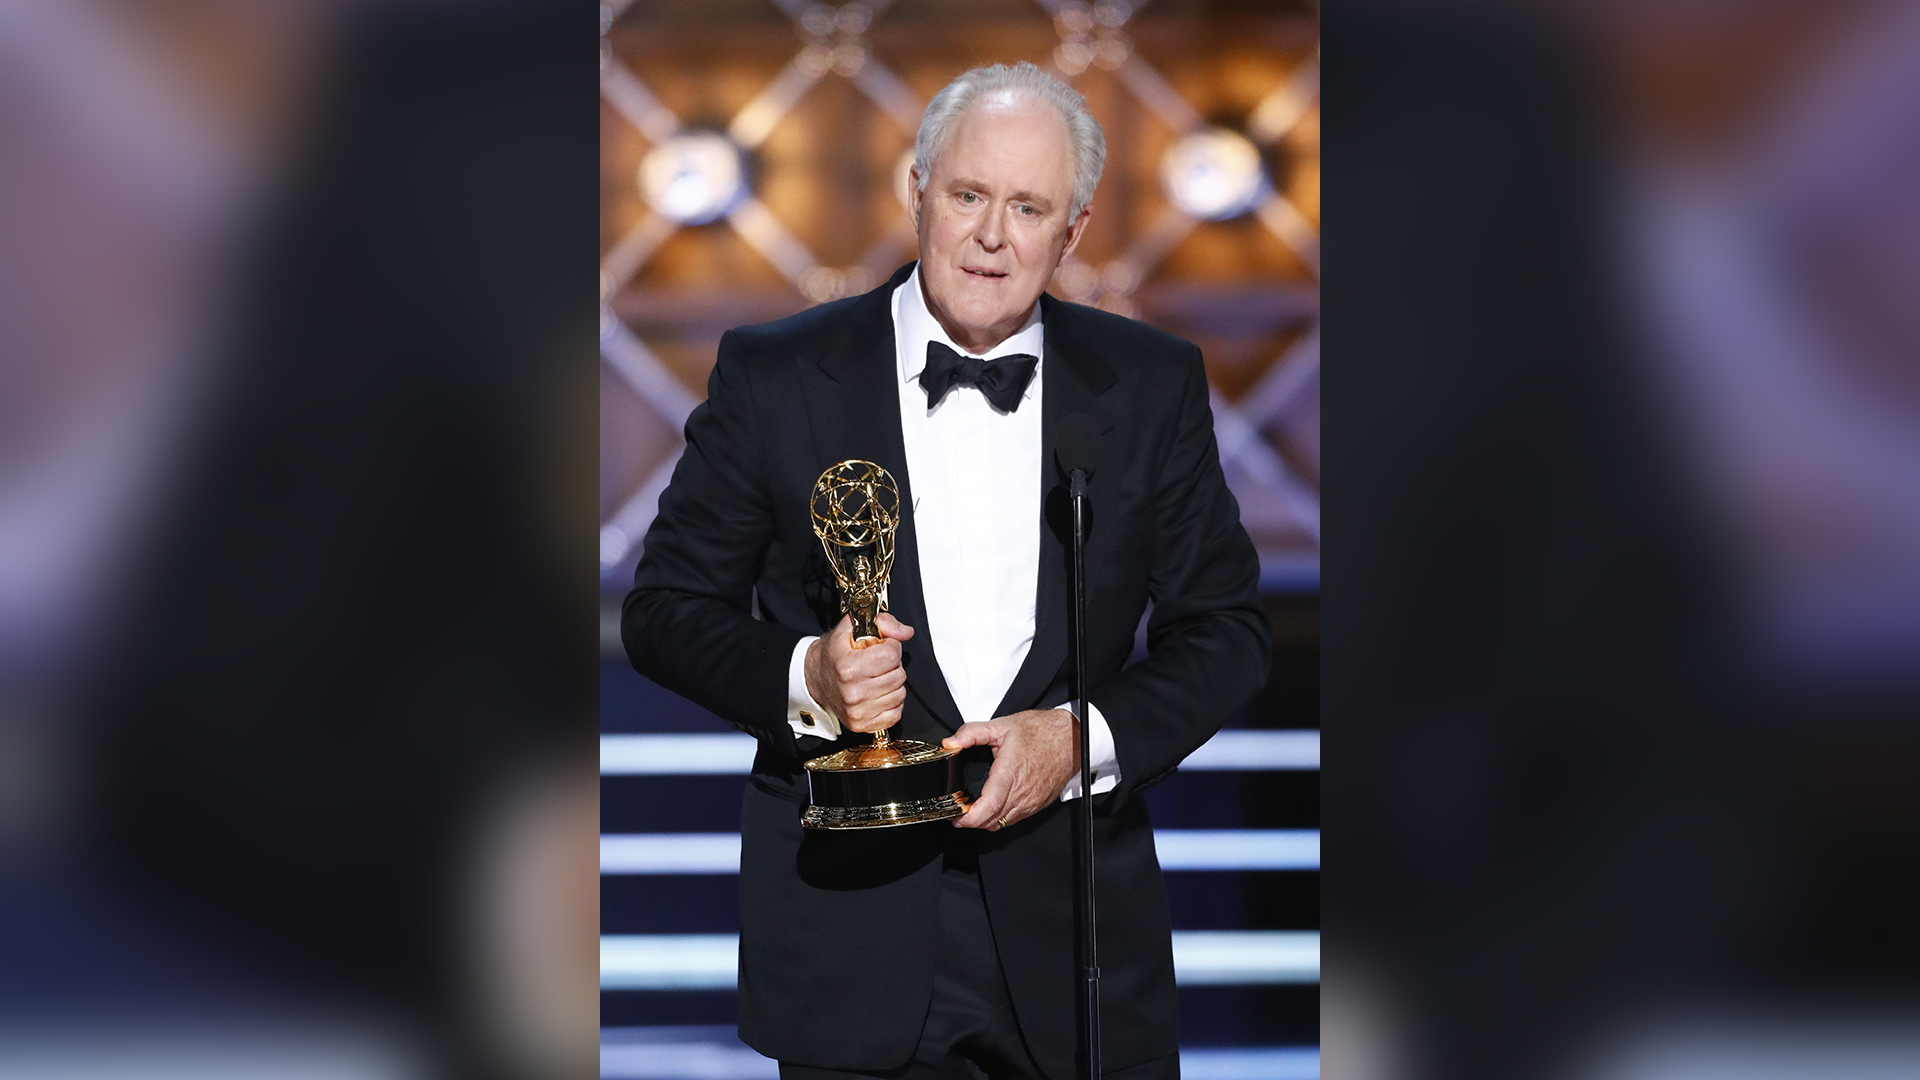 John Lithgow wins Outstanding Supporting Actor in a Drama Series at The 69th Emmy Awards.